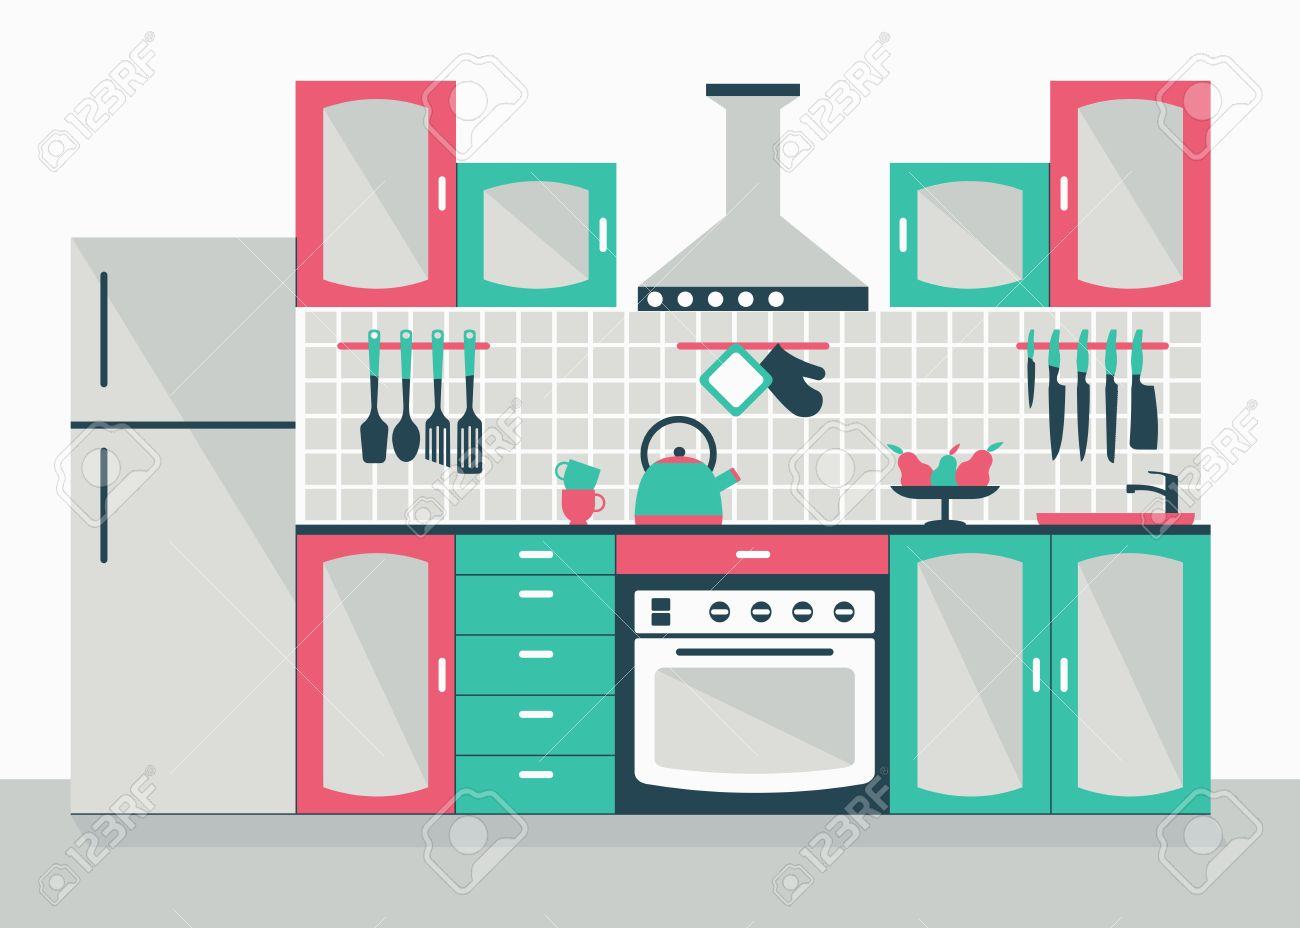 Modern kitchen interior cartoon flat vector illustration objects isolated on a white background